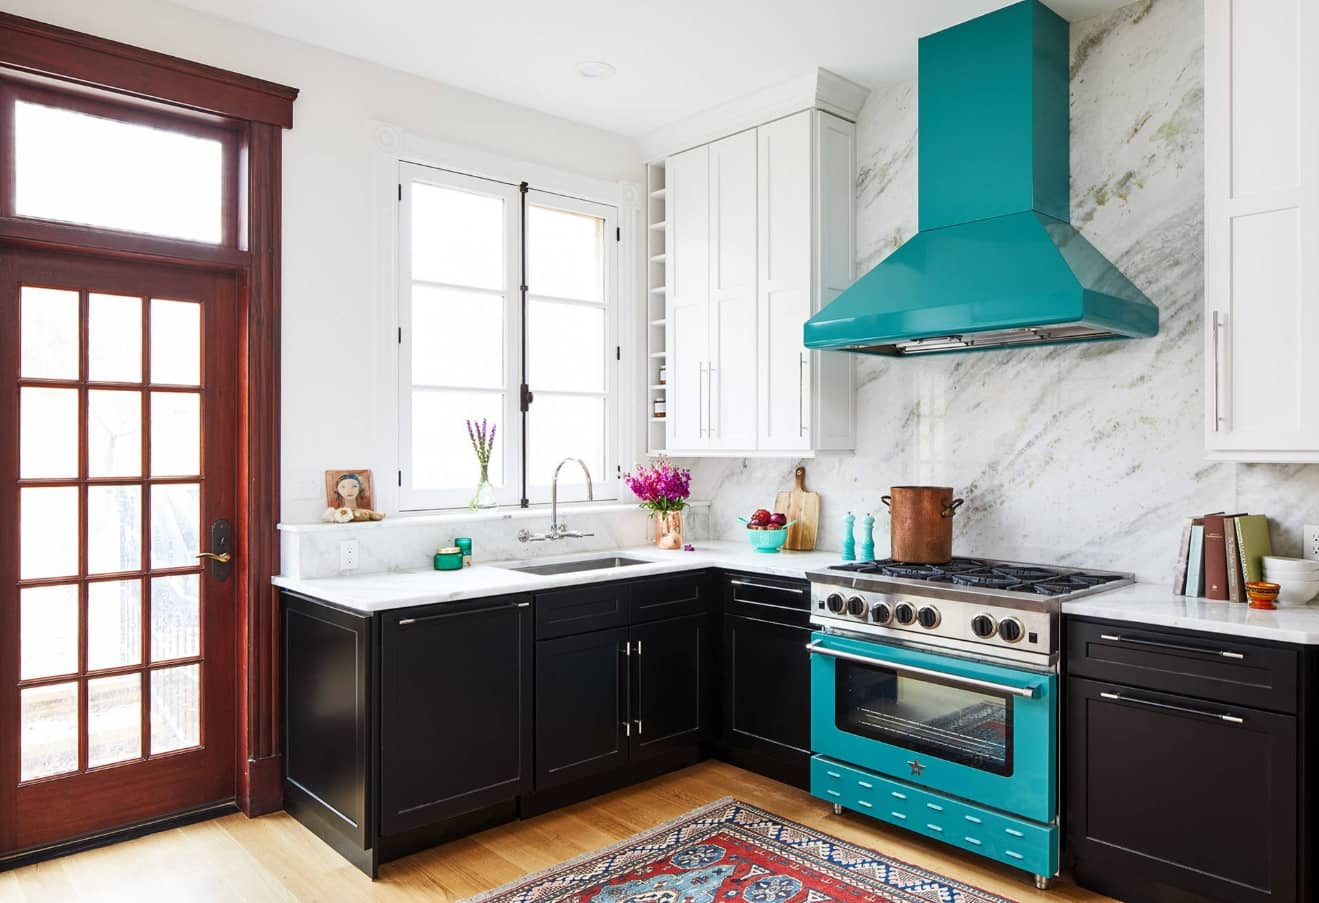 Enhance Home Interior with Stylish Appliances Without Breaking Bank. Great idea of turquoise colored interior items